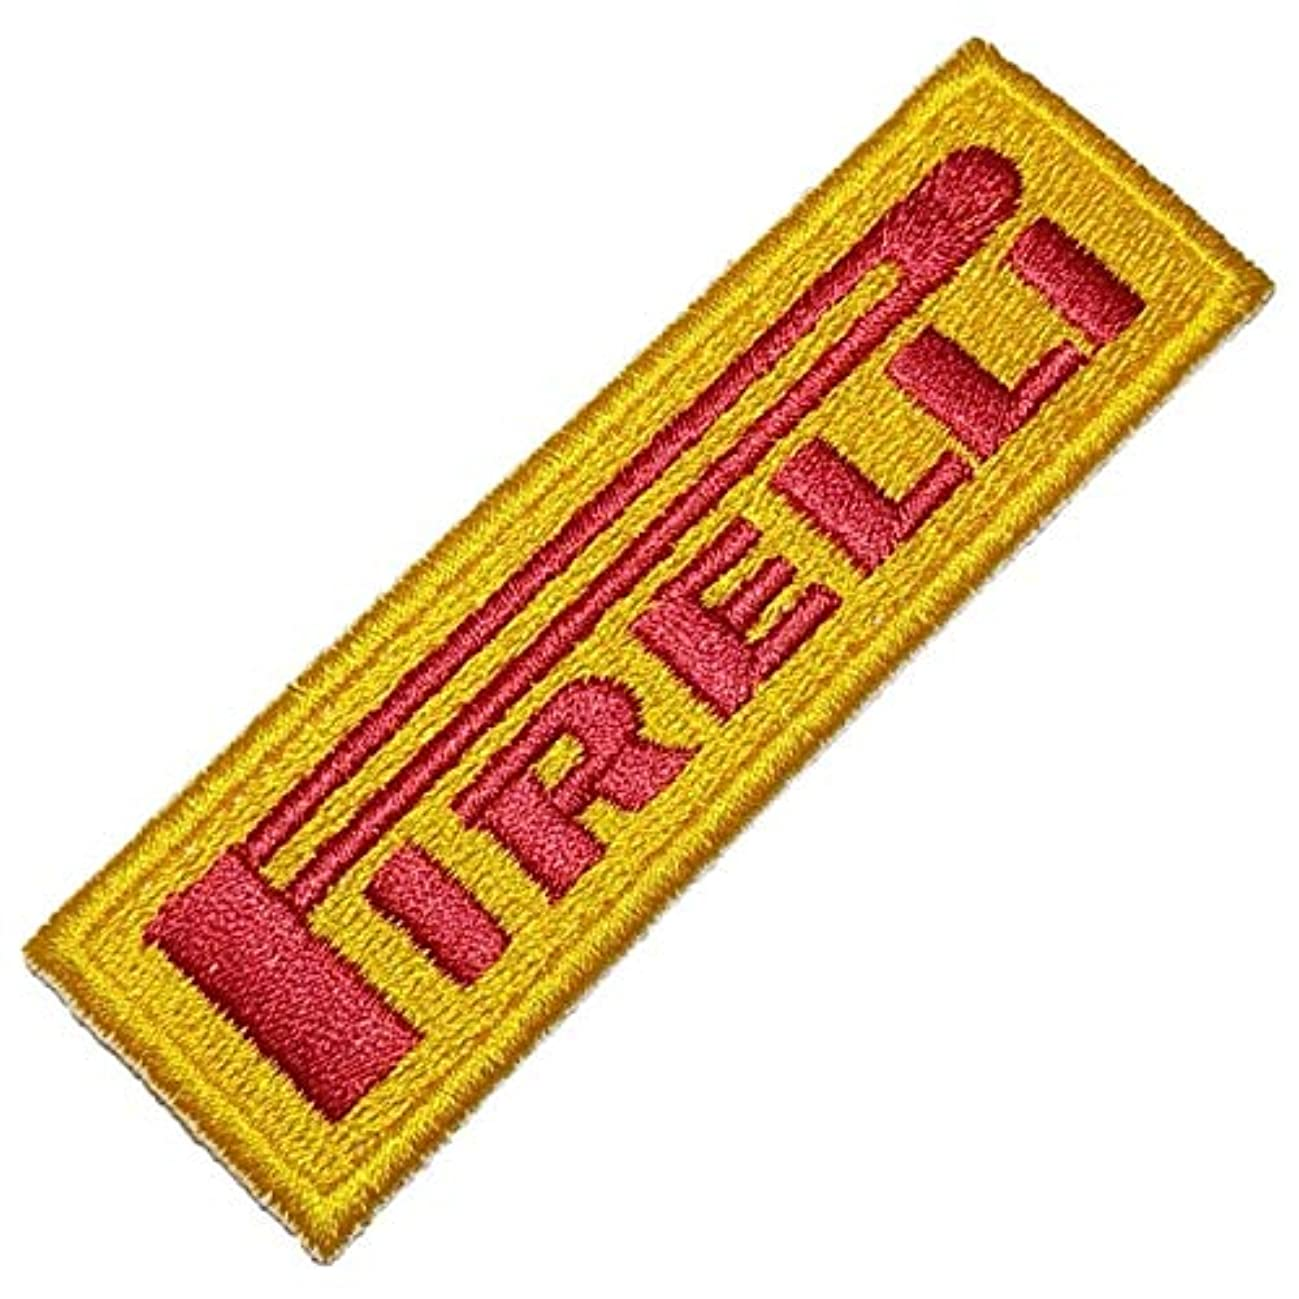 LOG272T Pirelli Motocross Biker Racing Patch to Old Suit Racing Kart - 100% Embroidered Iron on or Sew Size 3.74 x 1.18 in